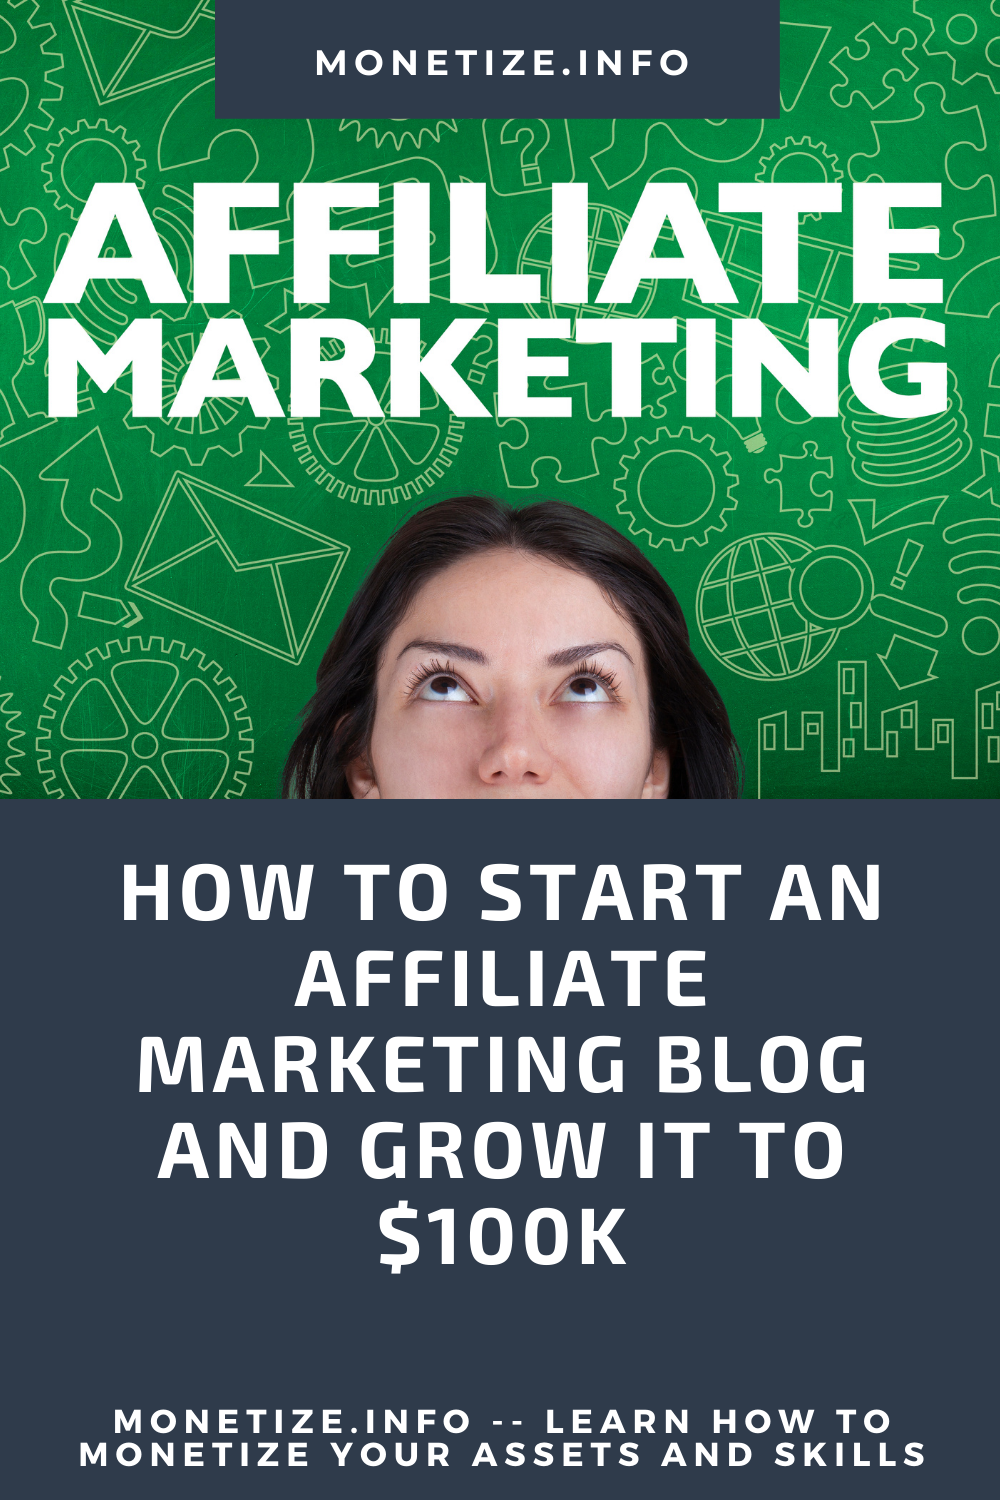 How to Start an Affiliate Marketing Blog and Grow it to $100K - Monetize.info